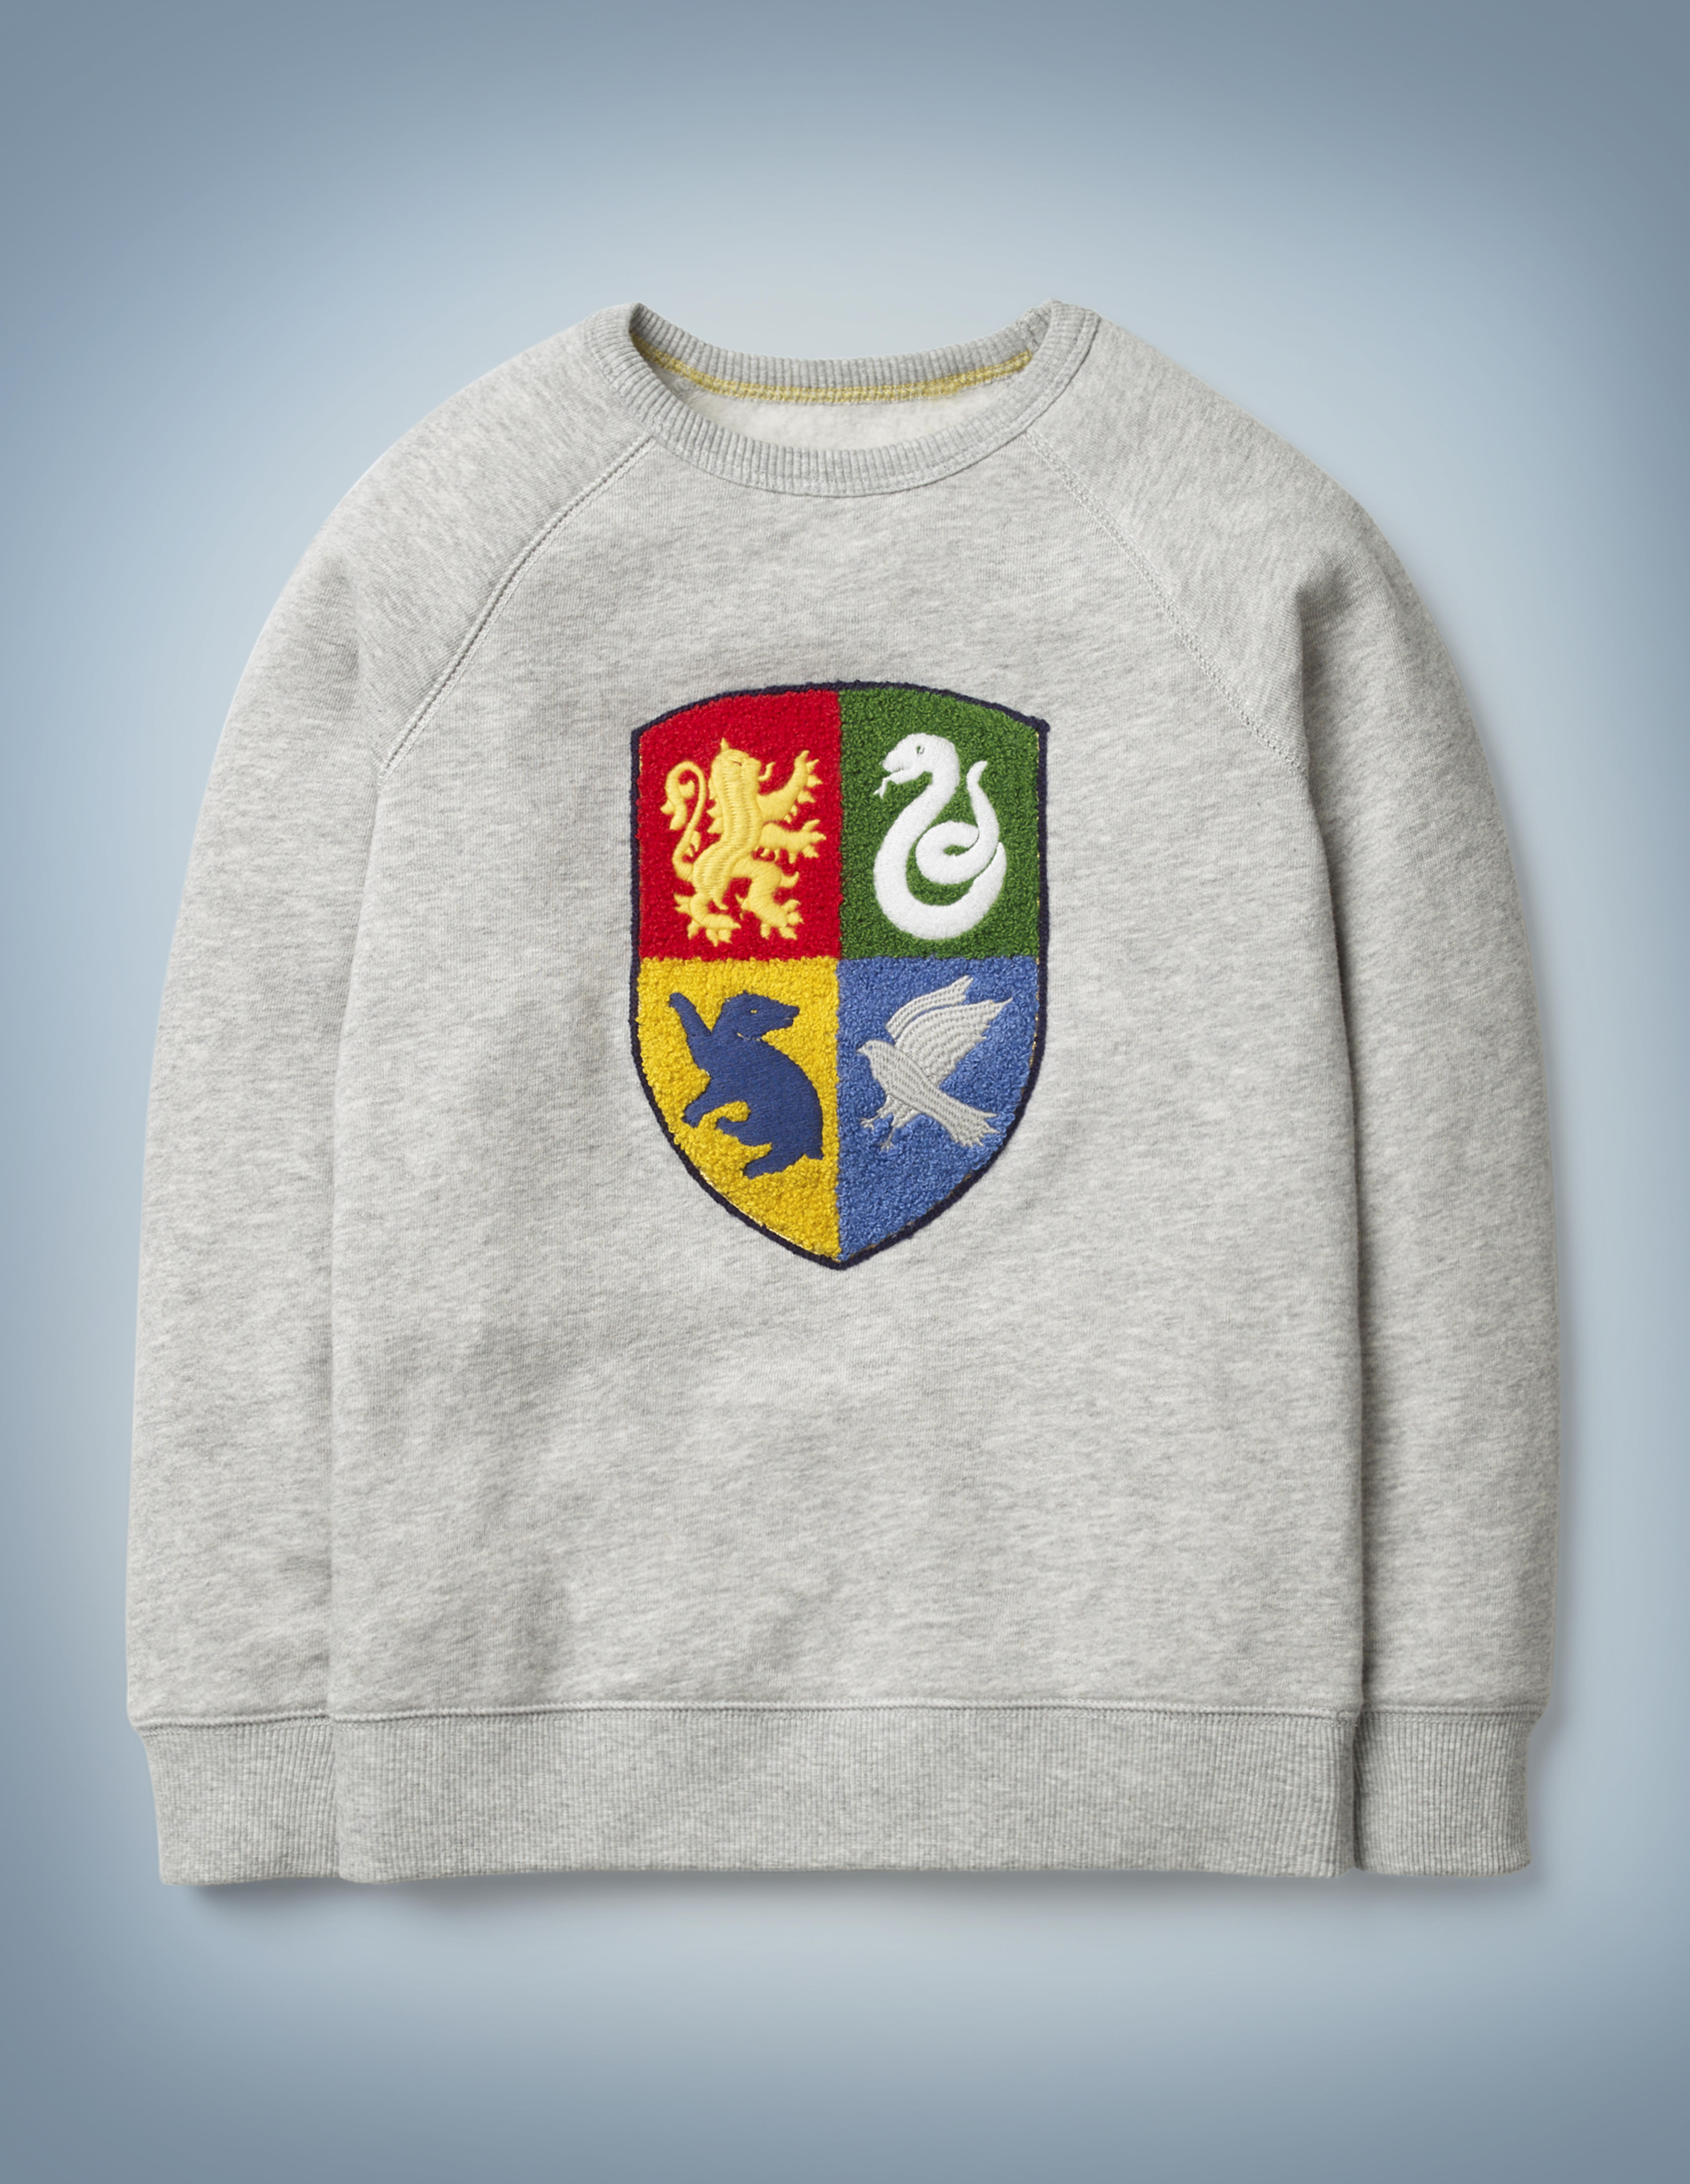 The Mini Boden Hogwarts Crest Sweatshirt in gray features a textured design showcasing the four Hogwarts House emblems. It retails at £28.